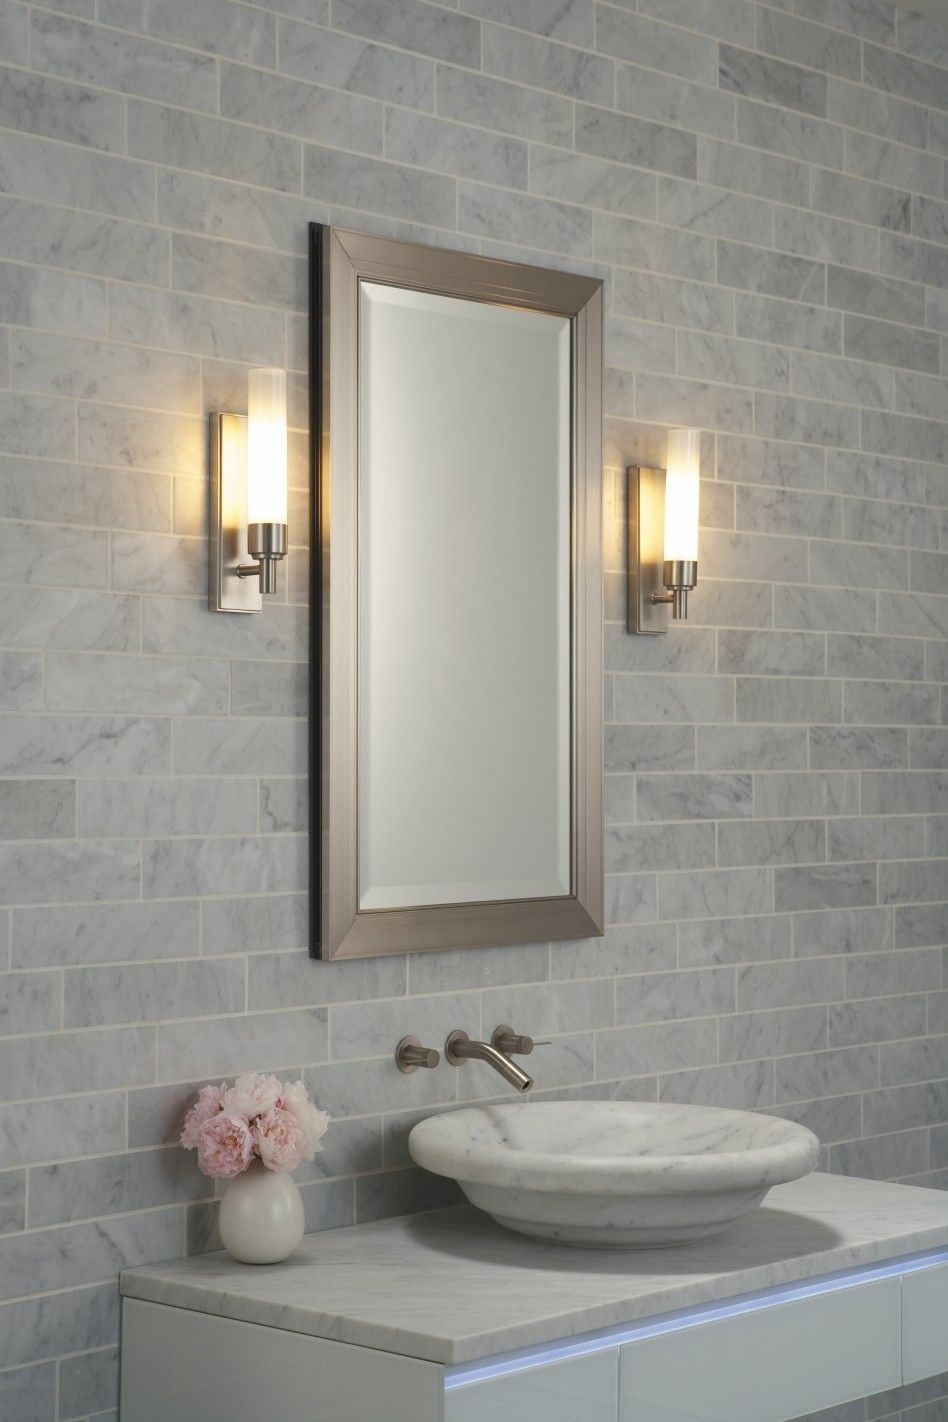 Bathroom Mirror Grey bathroom, awesome bathroom fixtures wall lights over white mirror